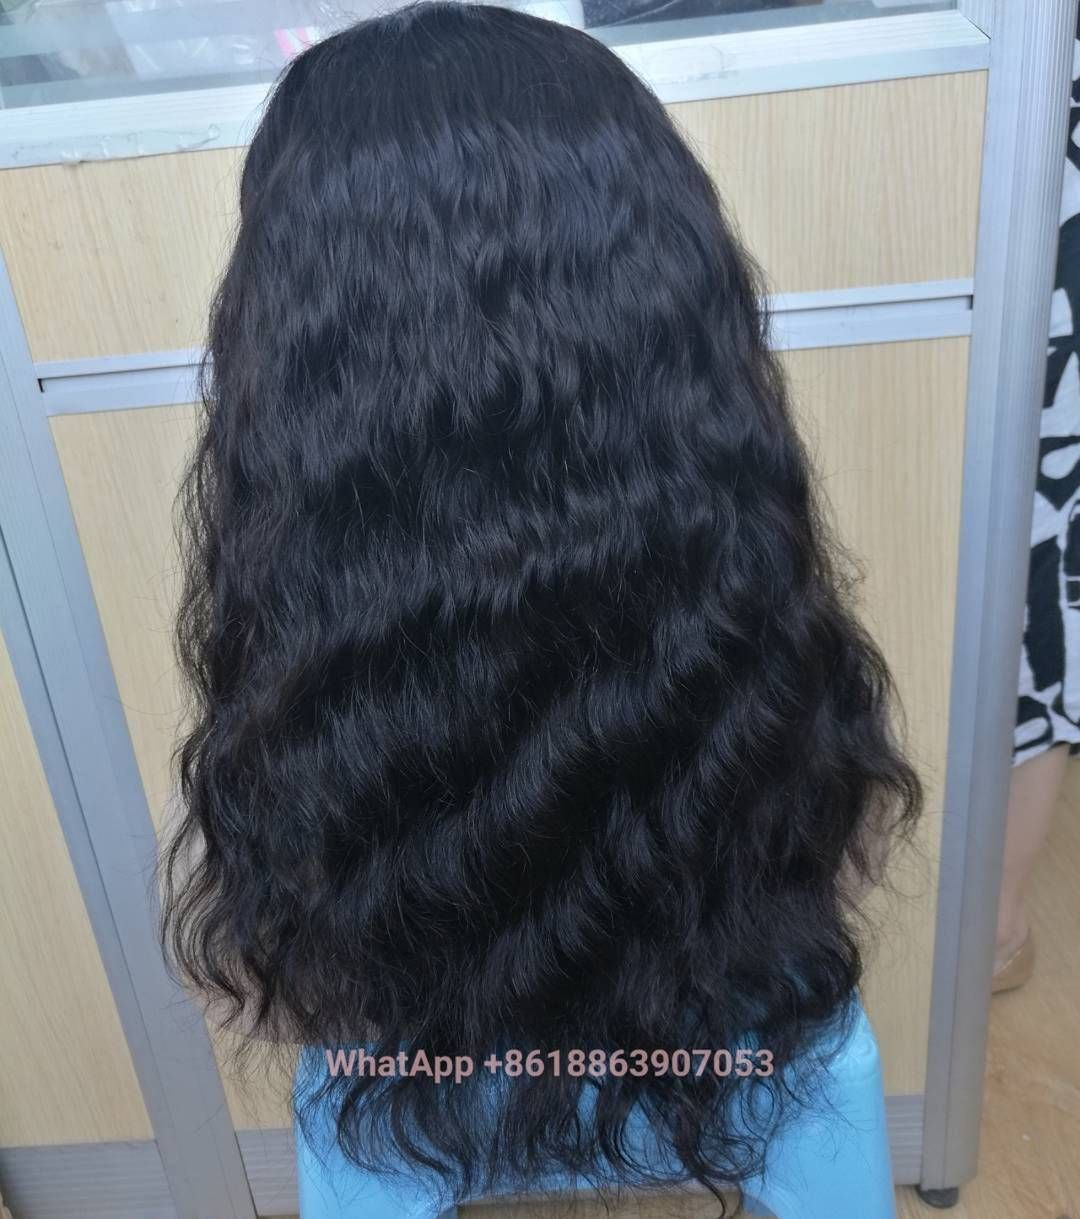 Arisonhairsupplier Wholesale Business Only Dm Me Directly For